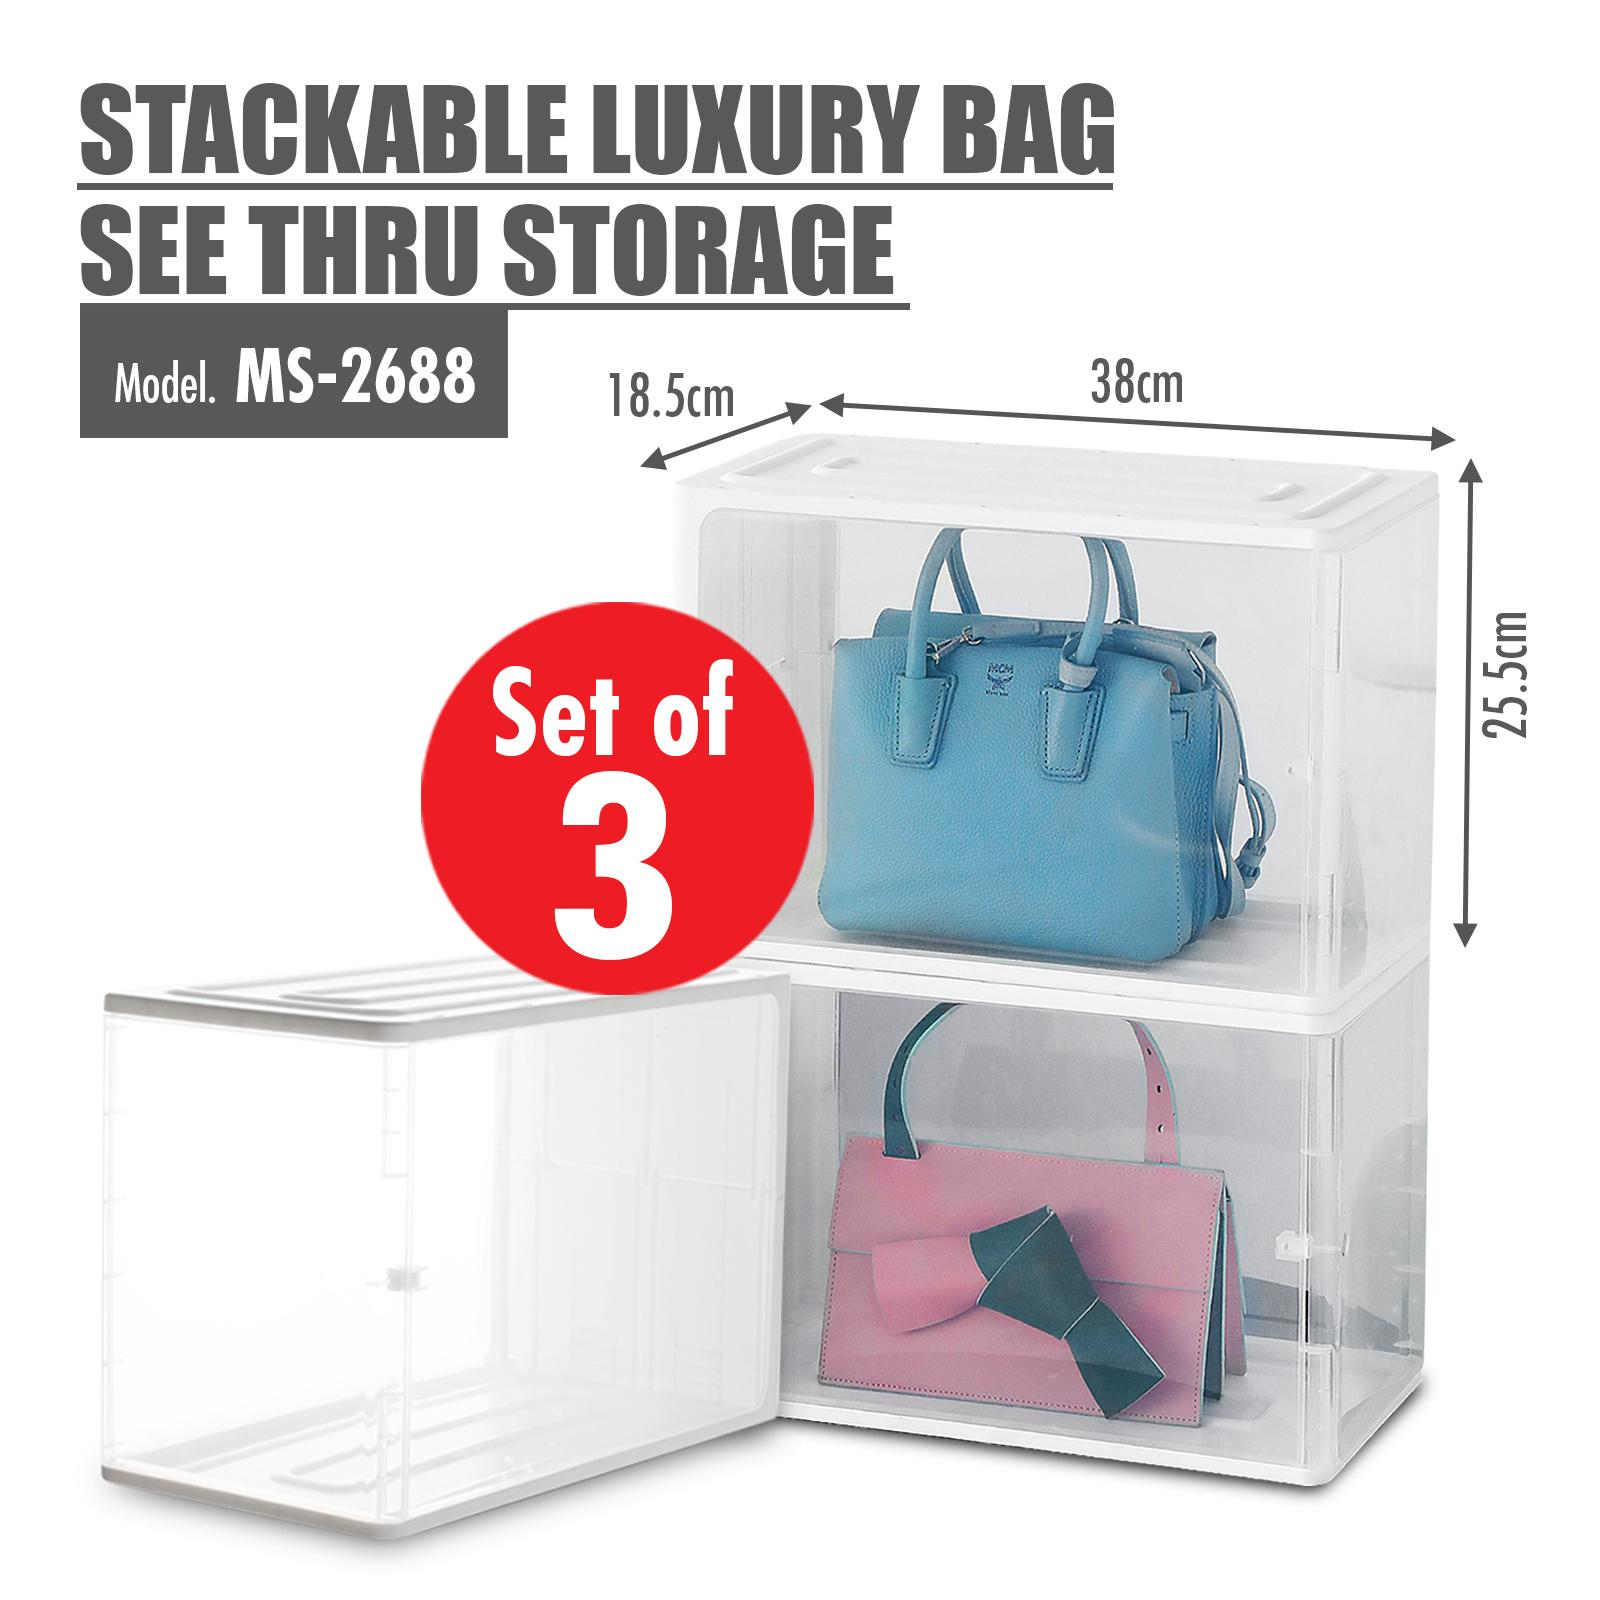 [Set of 3] HOUZE - Stackable Luxury Bag See Thru Storage (Dim: 38x18x25.5cm)